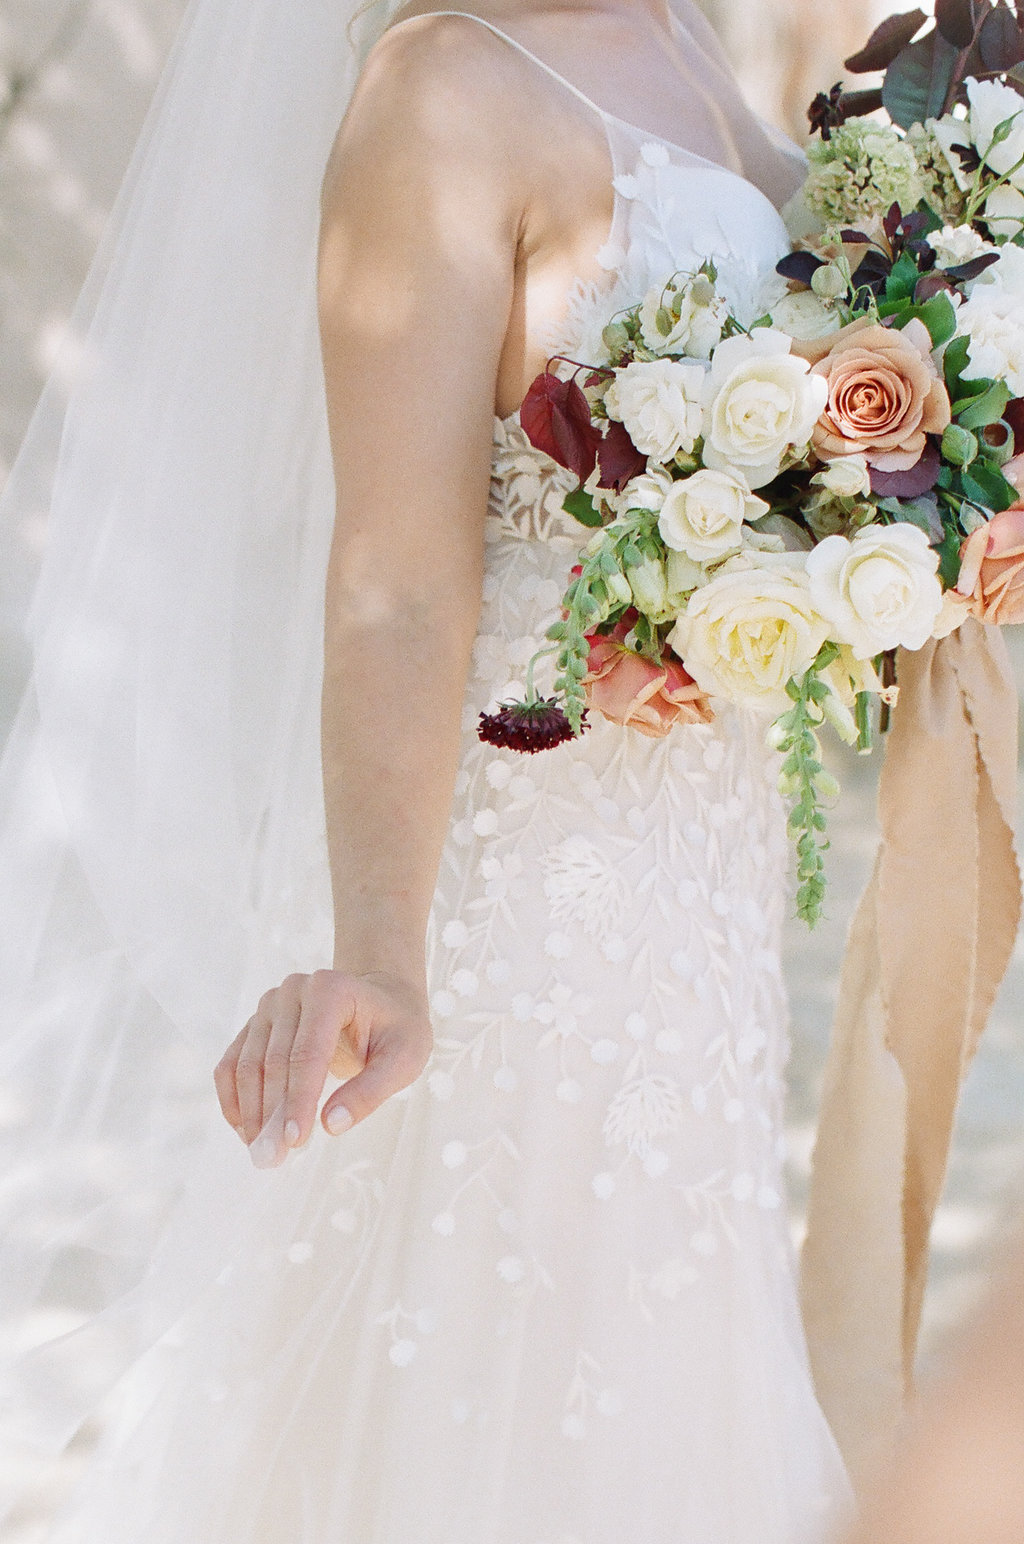 Check Out This California Wedding Dress and Bouquet